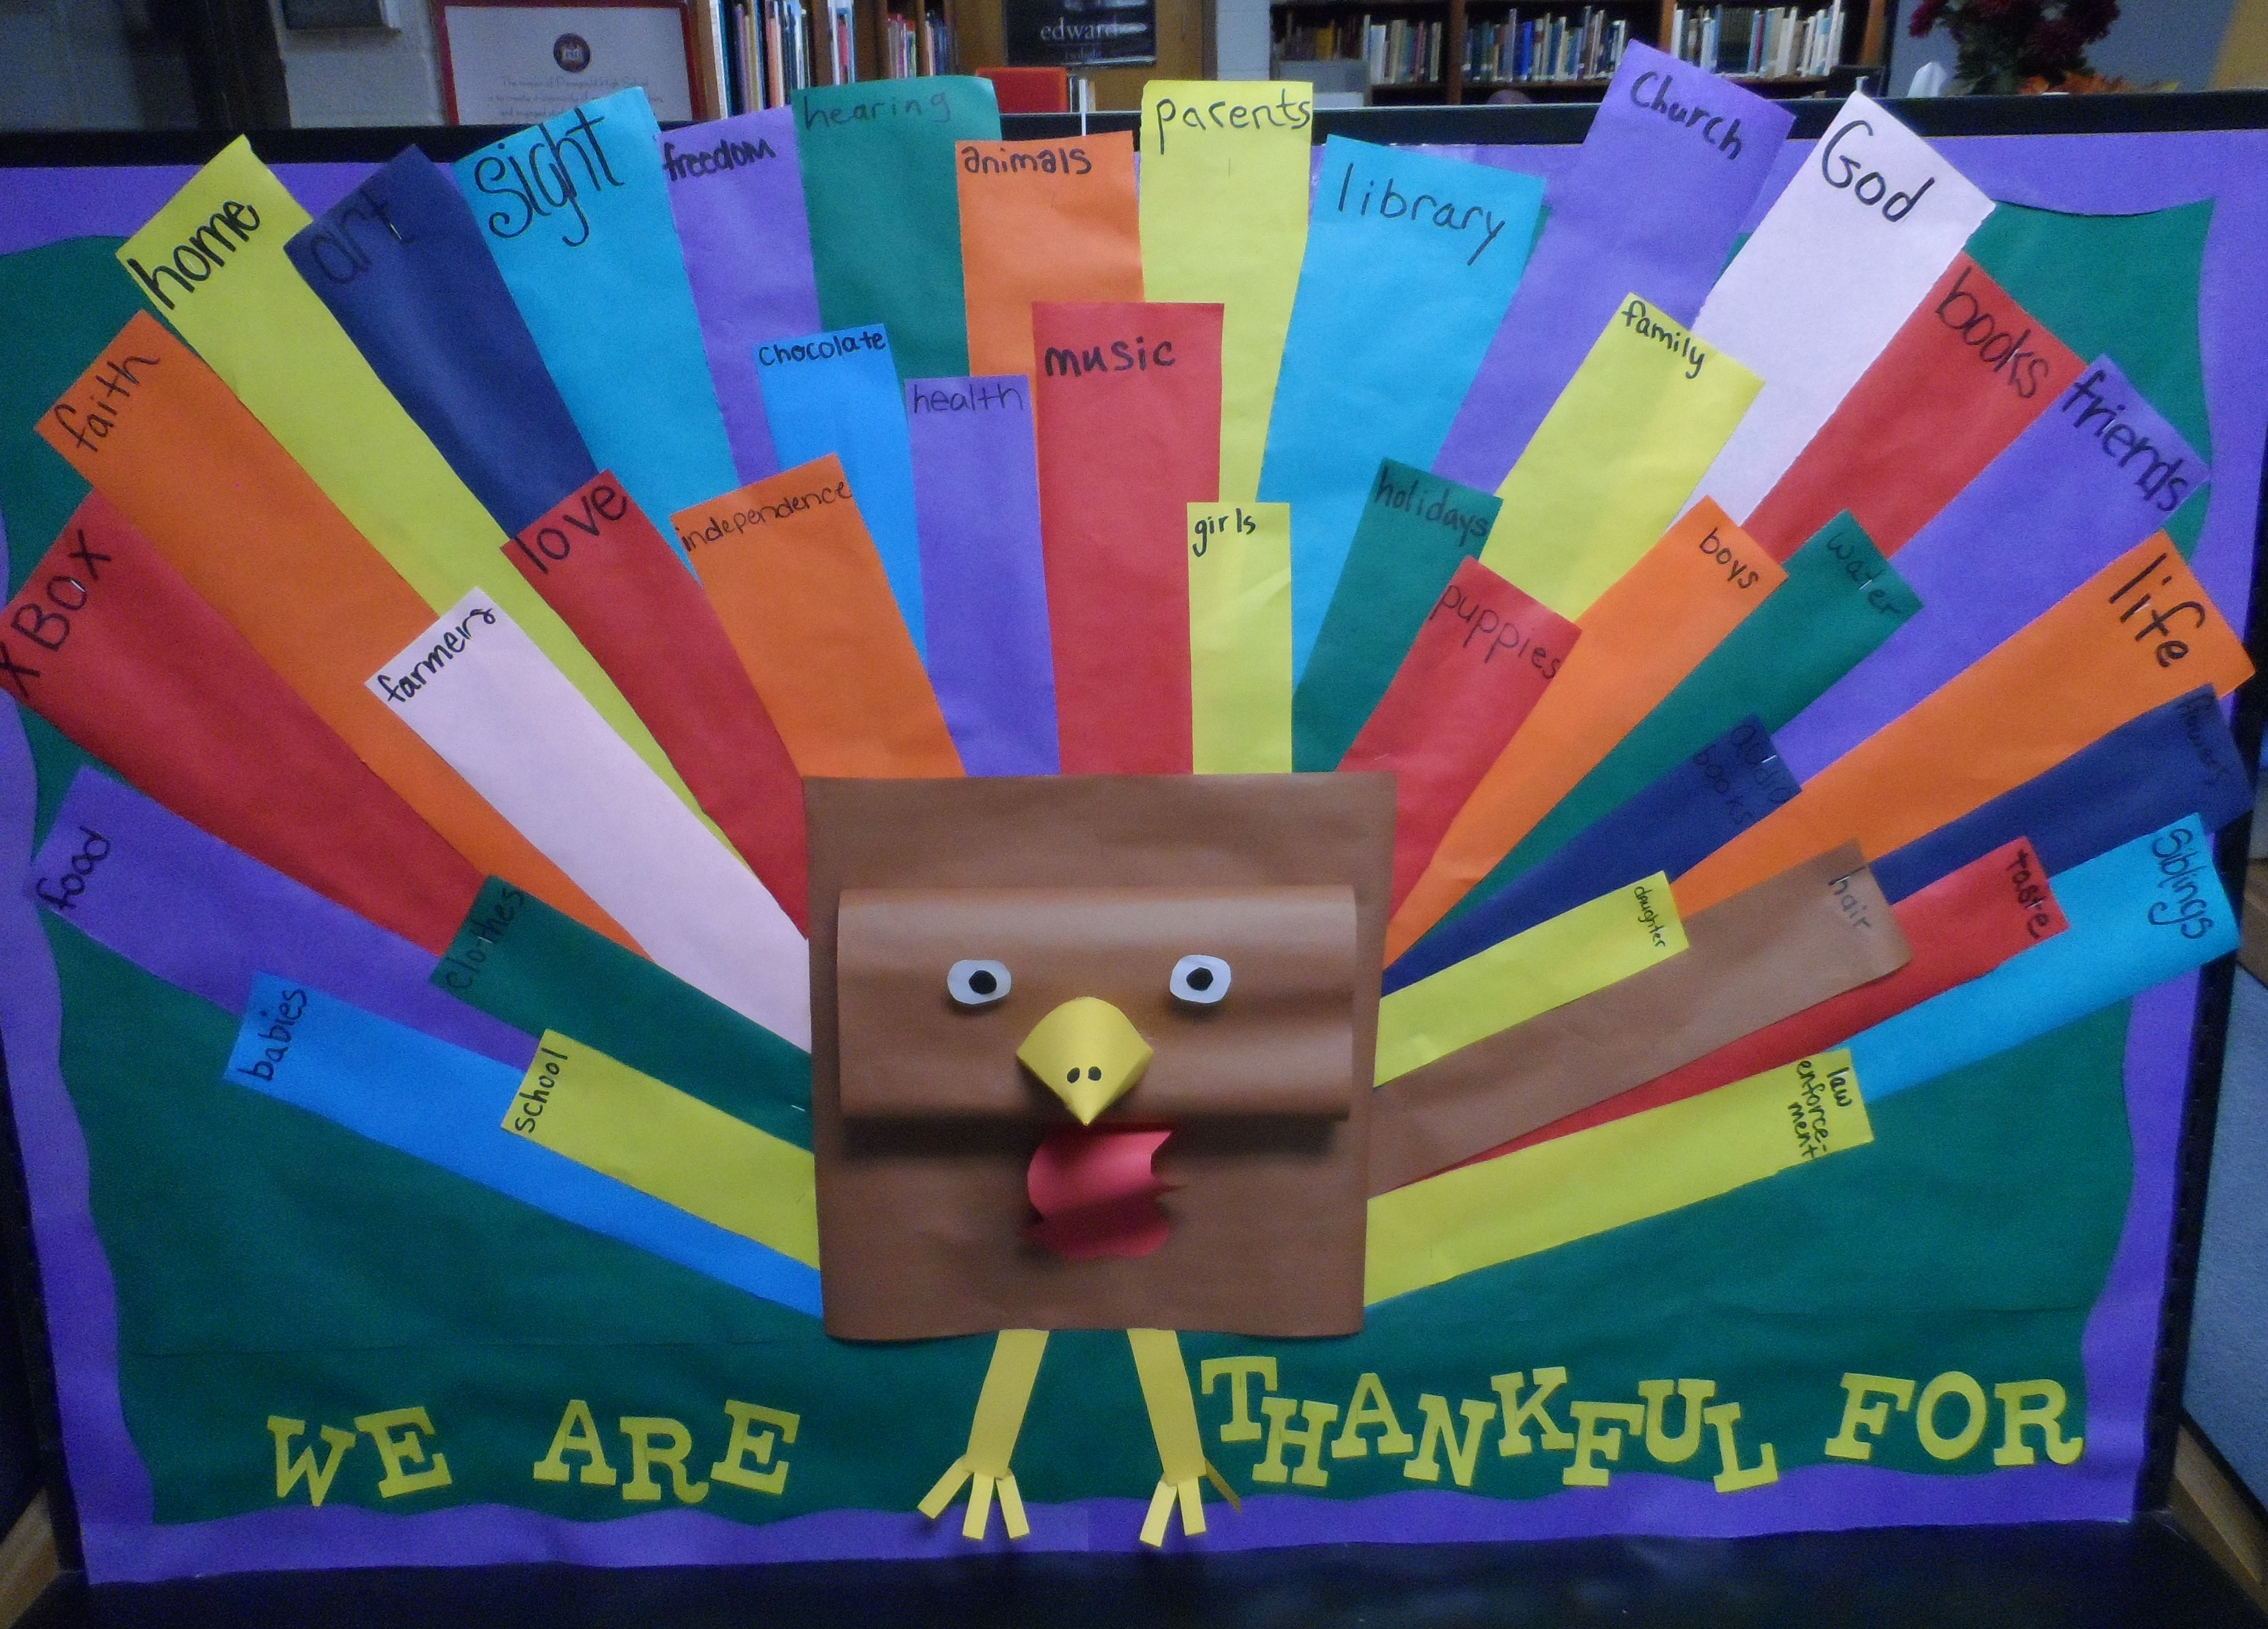 superb Thanksgiving Bulletin Boards For Church Part - 15: thanksgivingbulletinboard.jpg - Thanksgiving Bulletin Board